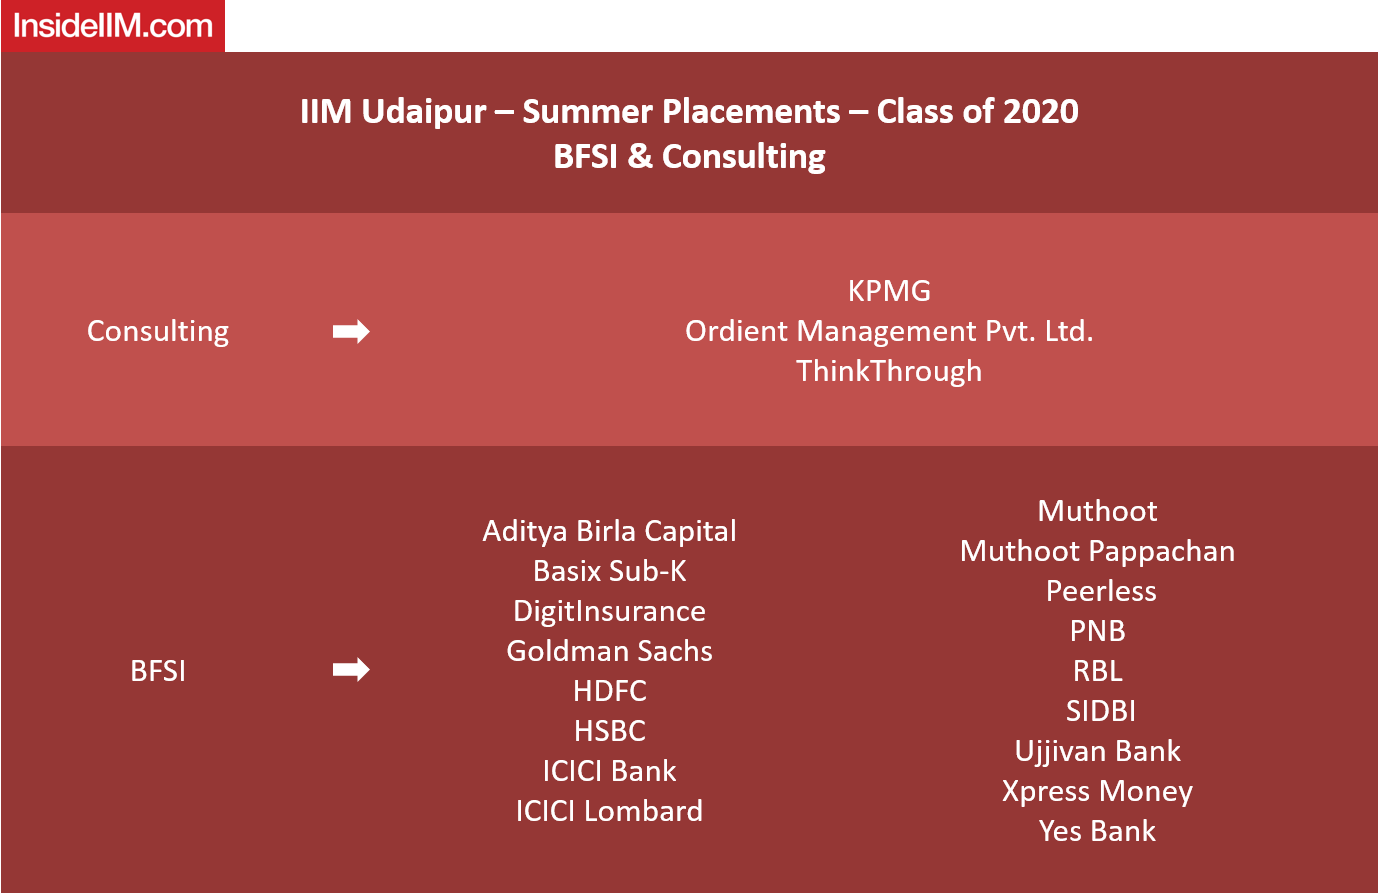 IIM Udaipur Placements 2019 - companies: BFSI & Consulting